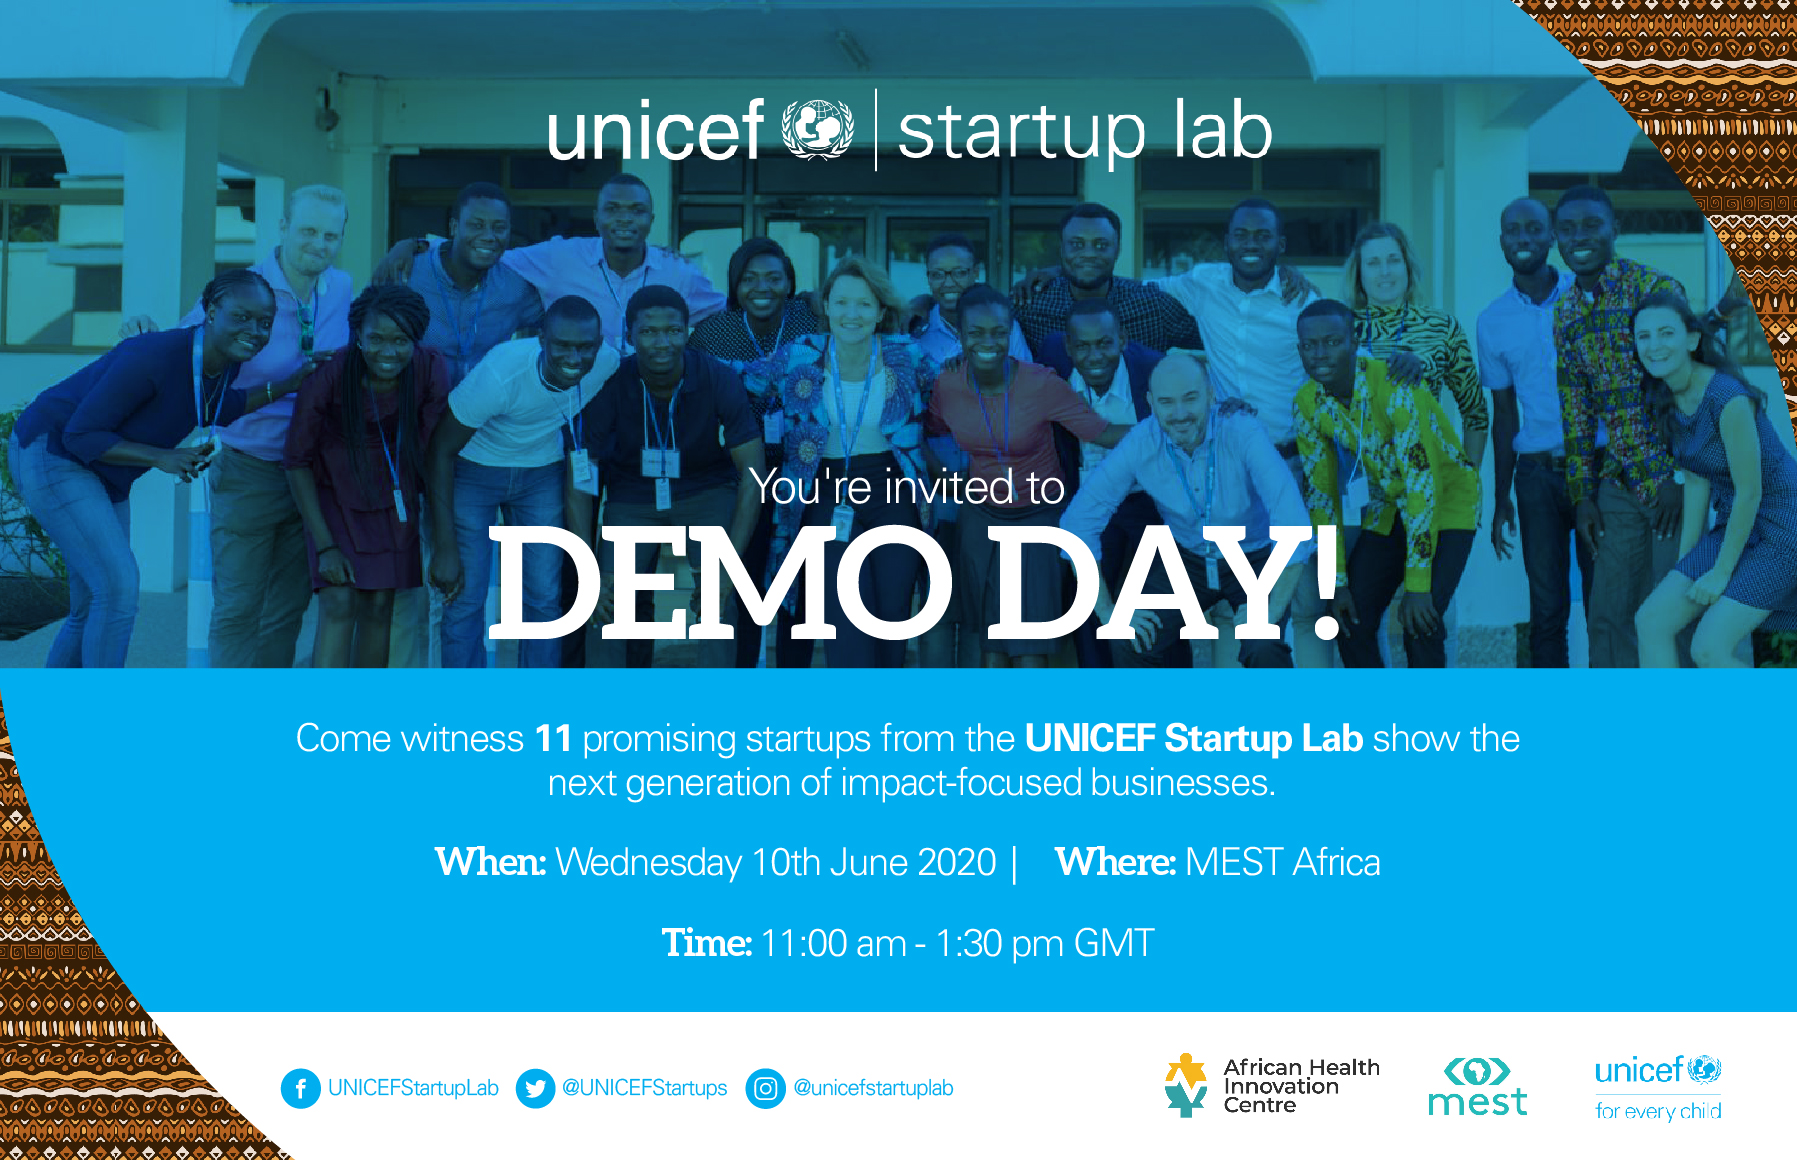 UNICEF DEMO DAY